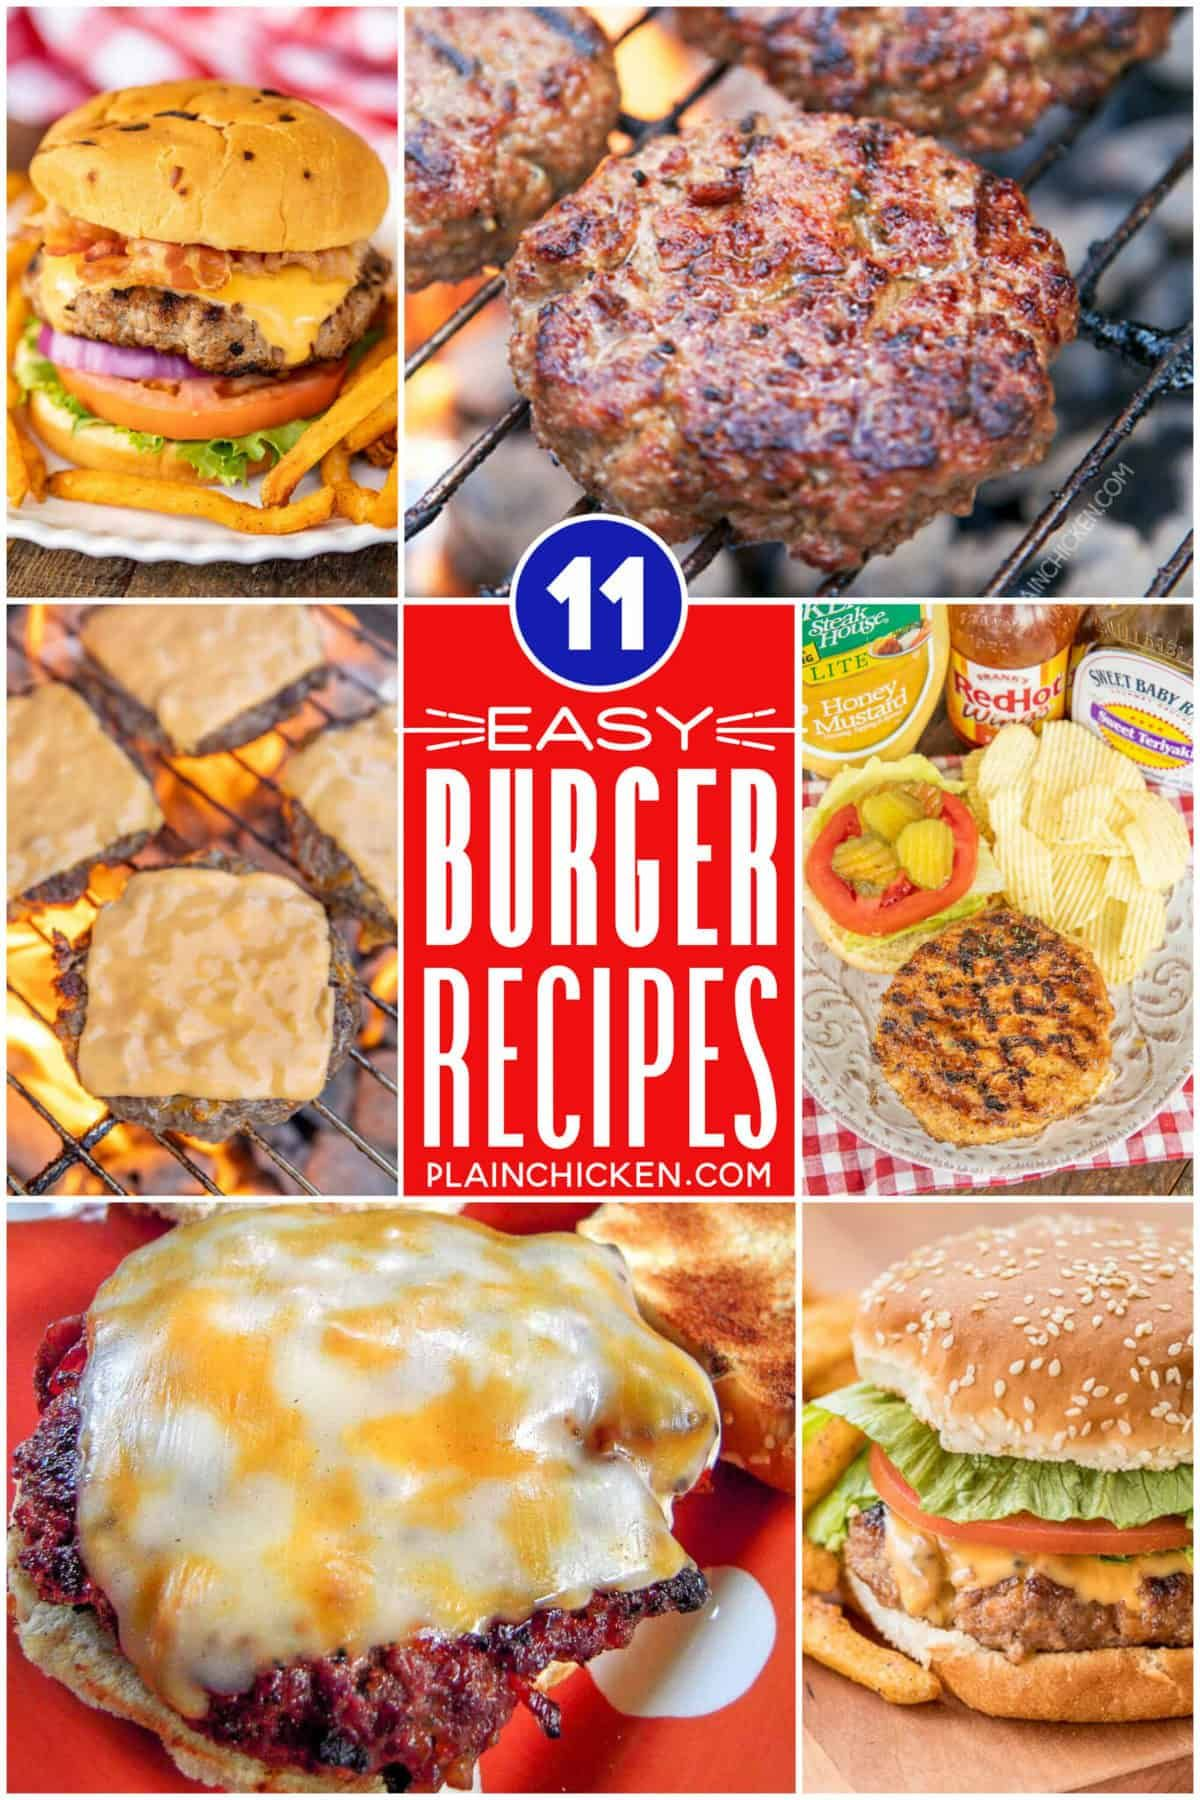 Easy Burger Recipes 11 Easy Hamburger Recipes For Summer Ground Beef And Chicken Burgers These Are The Best In 2020 Easy Burgers Easy Burger Recipe Burger Recipes